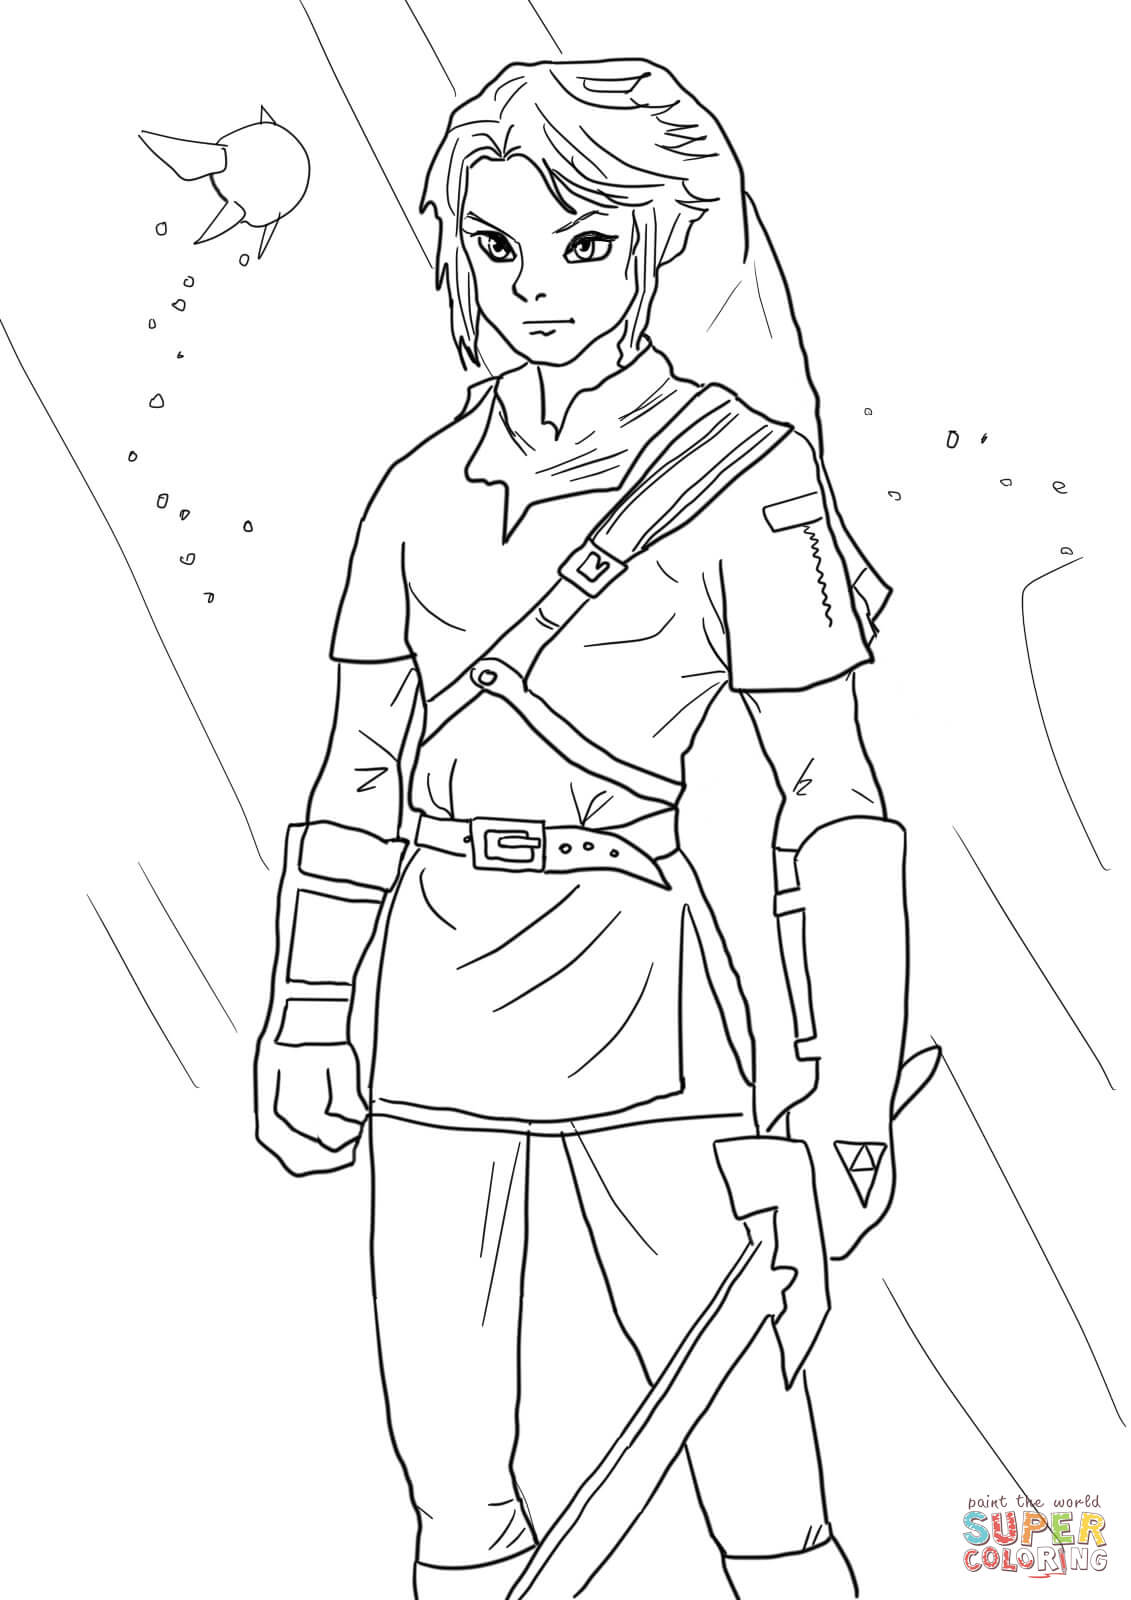 coloring with legend free printable zelda coloring pages for kids coloring legend with